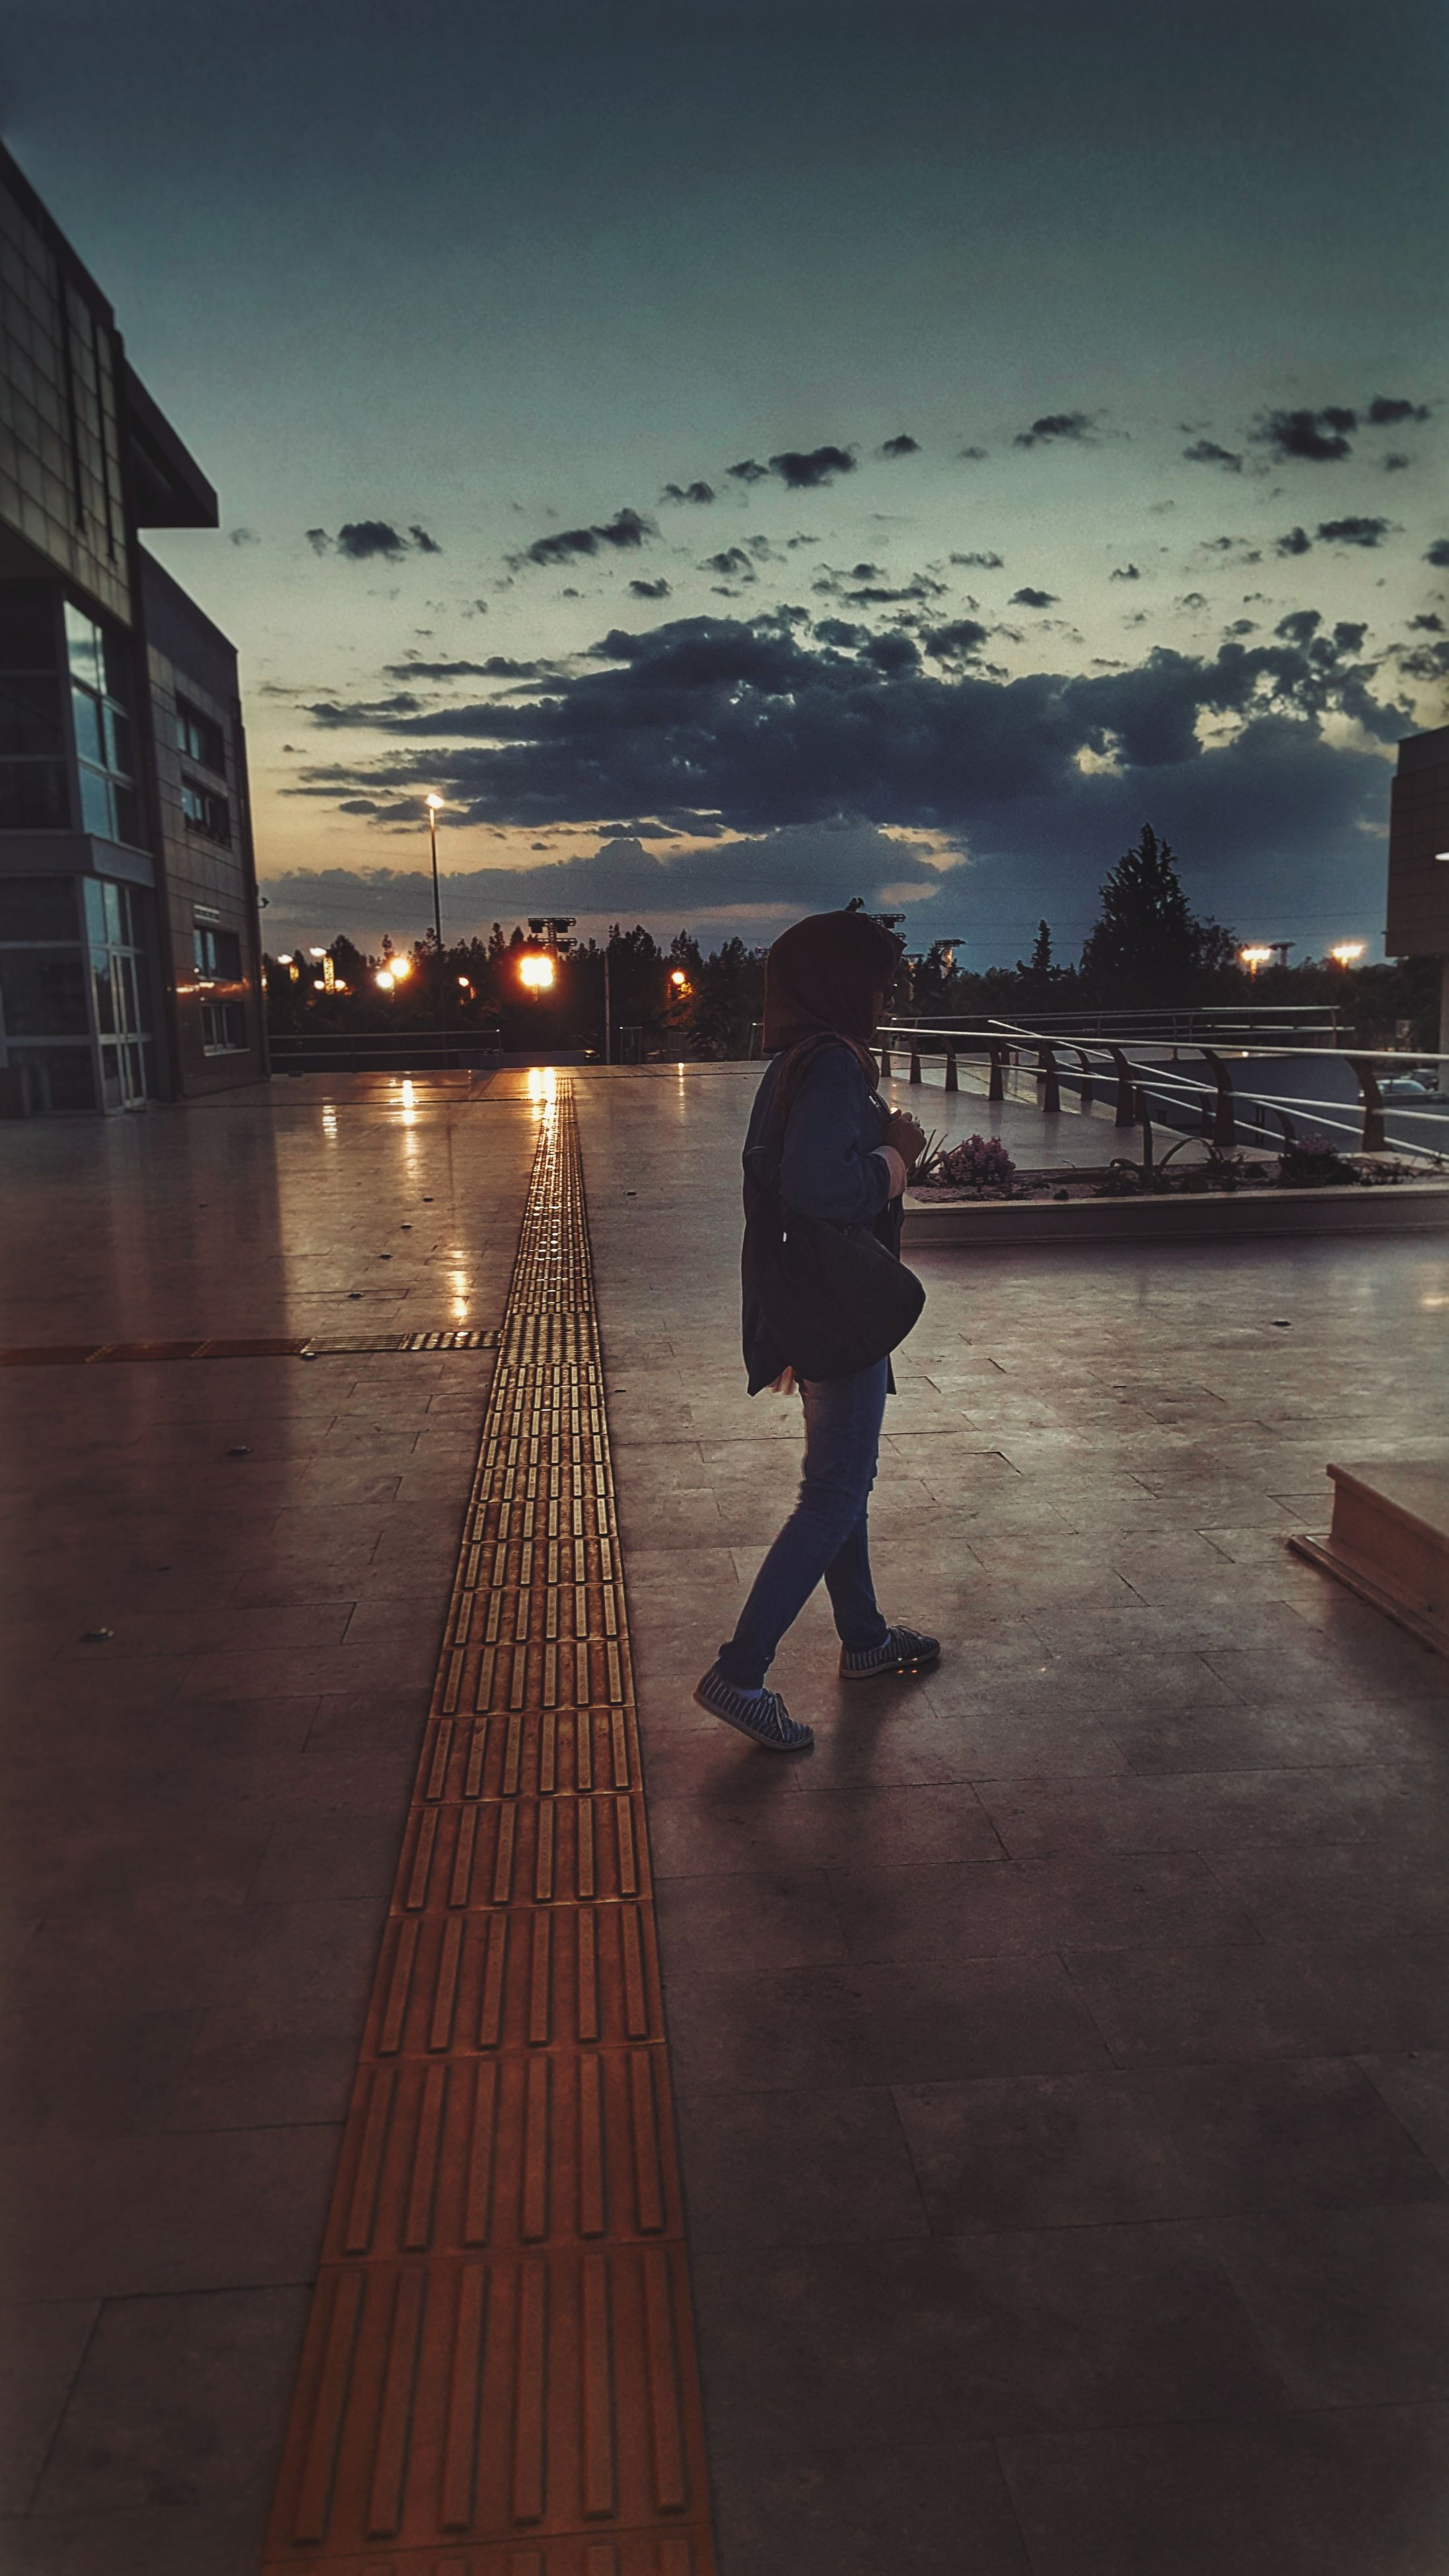 real people, lifestyles, leisure activity, water, building exterior, full length, sky, men, built structure, architecture, outdoors, one person, sunset, illuminated, women, city, people, nature, adults only, adult, cityscape, night